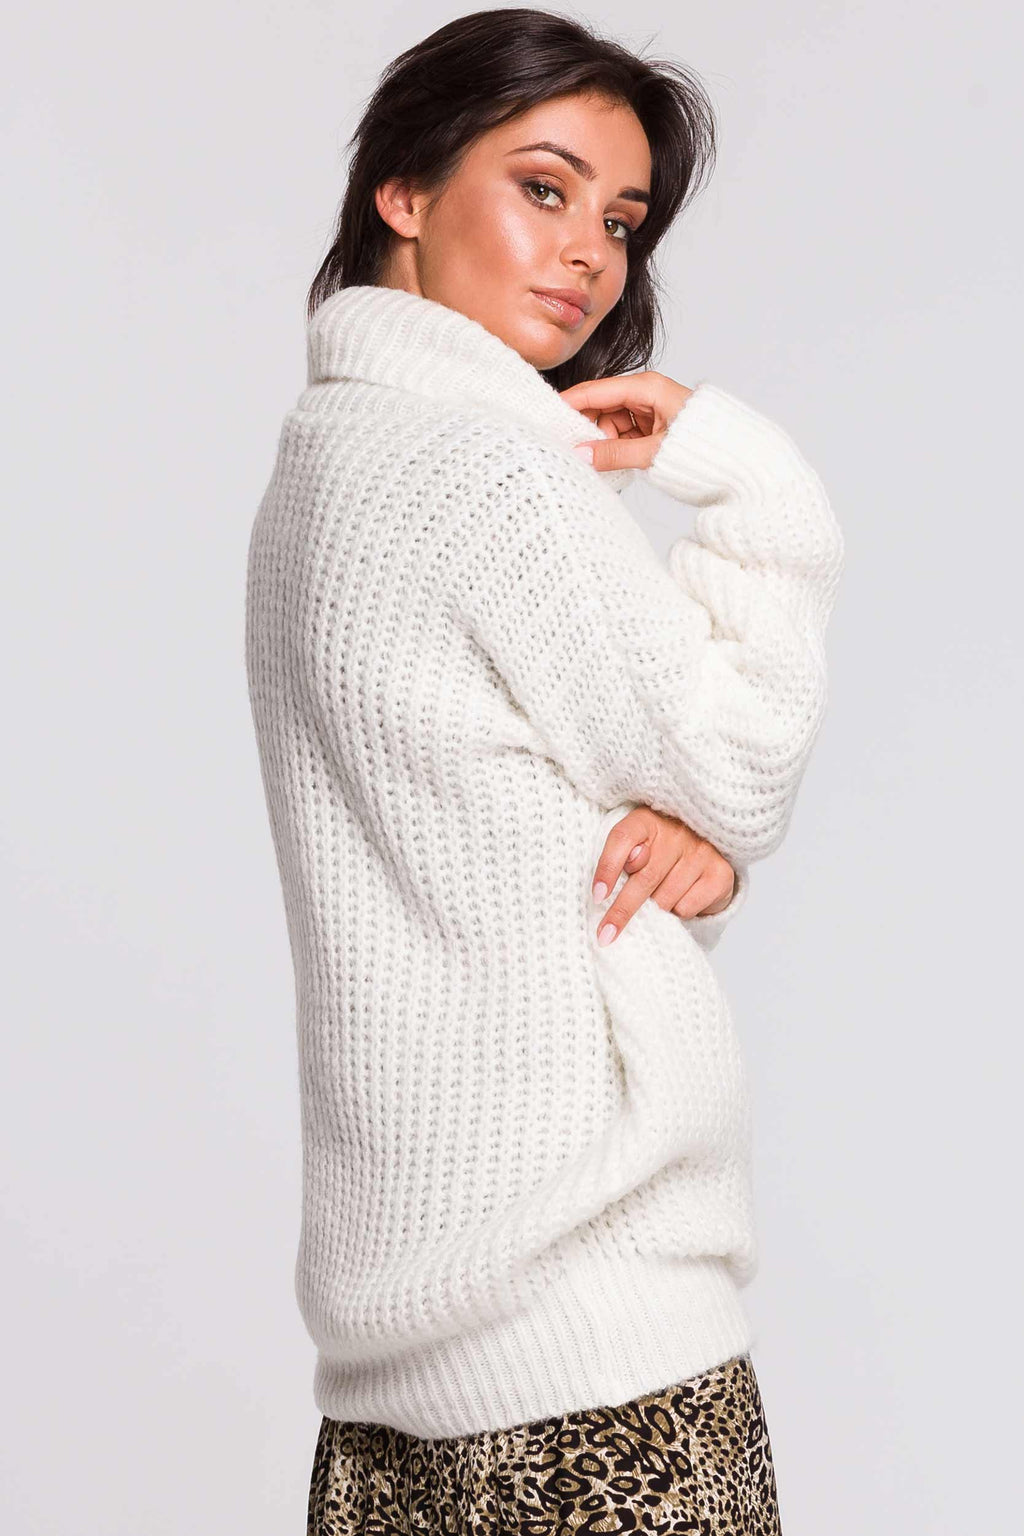 White Turtleneck Sweater Dress - So Chic Boutique